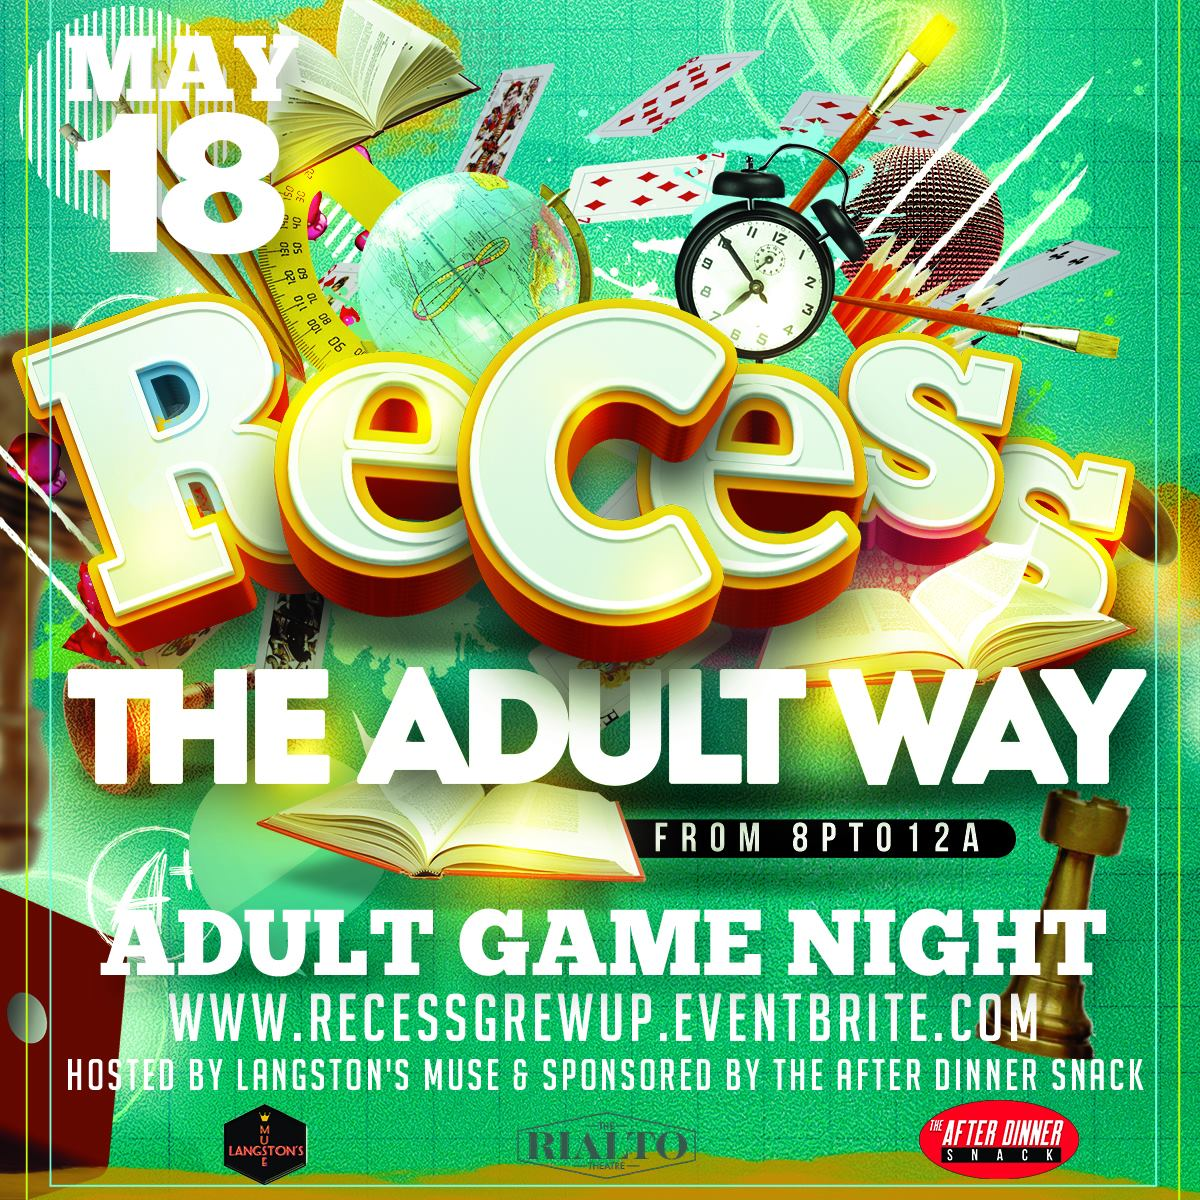 Langston's Muse Presents  RECESS ~ AN ADULT GAME NIGHT *Sponsored by The After Dinner Snack*   If you're like us, then Recess was a huge part of your childhood. All of the games, the freedom to just be, the laughs...we're bringing it all back to enjoy as adults. Take a night for yourself to be immersed in a high energy environment full of interactive games and friendly competition with good company. We'll have some of our favorites like Giant Jenga, Twister, Black Card Revoked, Left Right Center, and even some drinking games so there's sure to be something for everyone. Not much of a gamer? That's okay, the entertainment will keep you engaged. Bring a friend or come alone to meet some new ones!  A complimentary themed cocktail and snacks are included with each ticket (while supplies last).   It's Time For Recess....You Don't Want to Miss This!   *This is a +21 event. ~ Must show proper id upon entry.* *Please drink responsibly.*   RSVP to the Facebook Event Page!    Get tickets here!